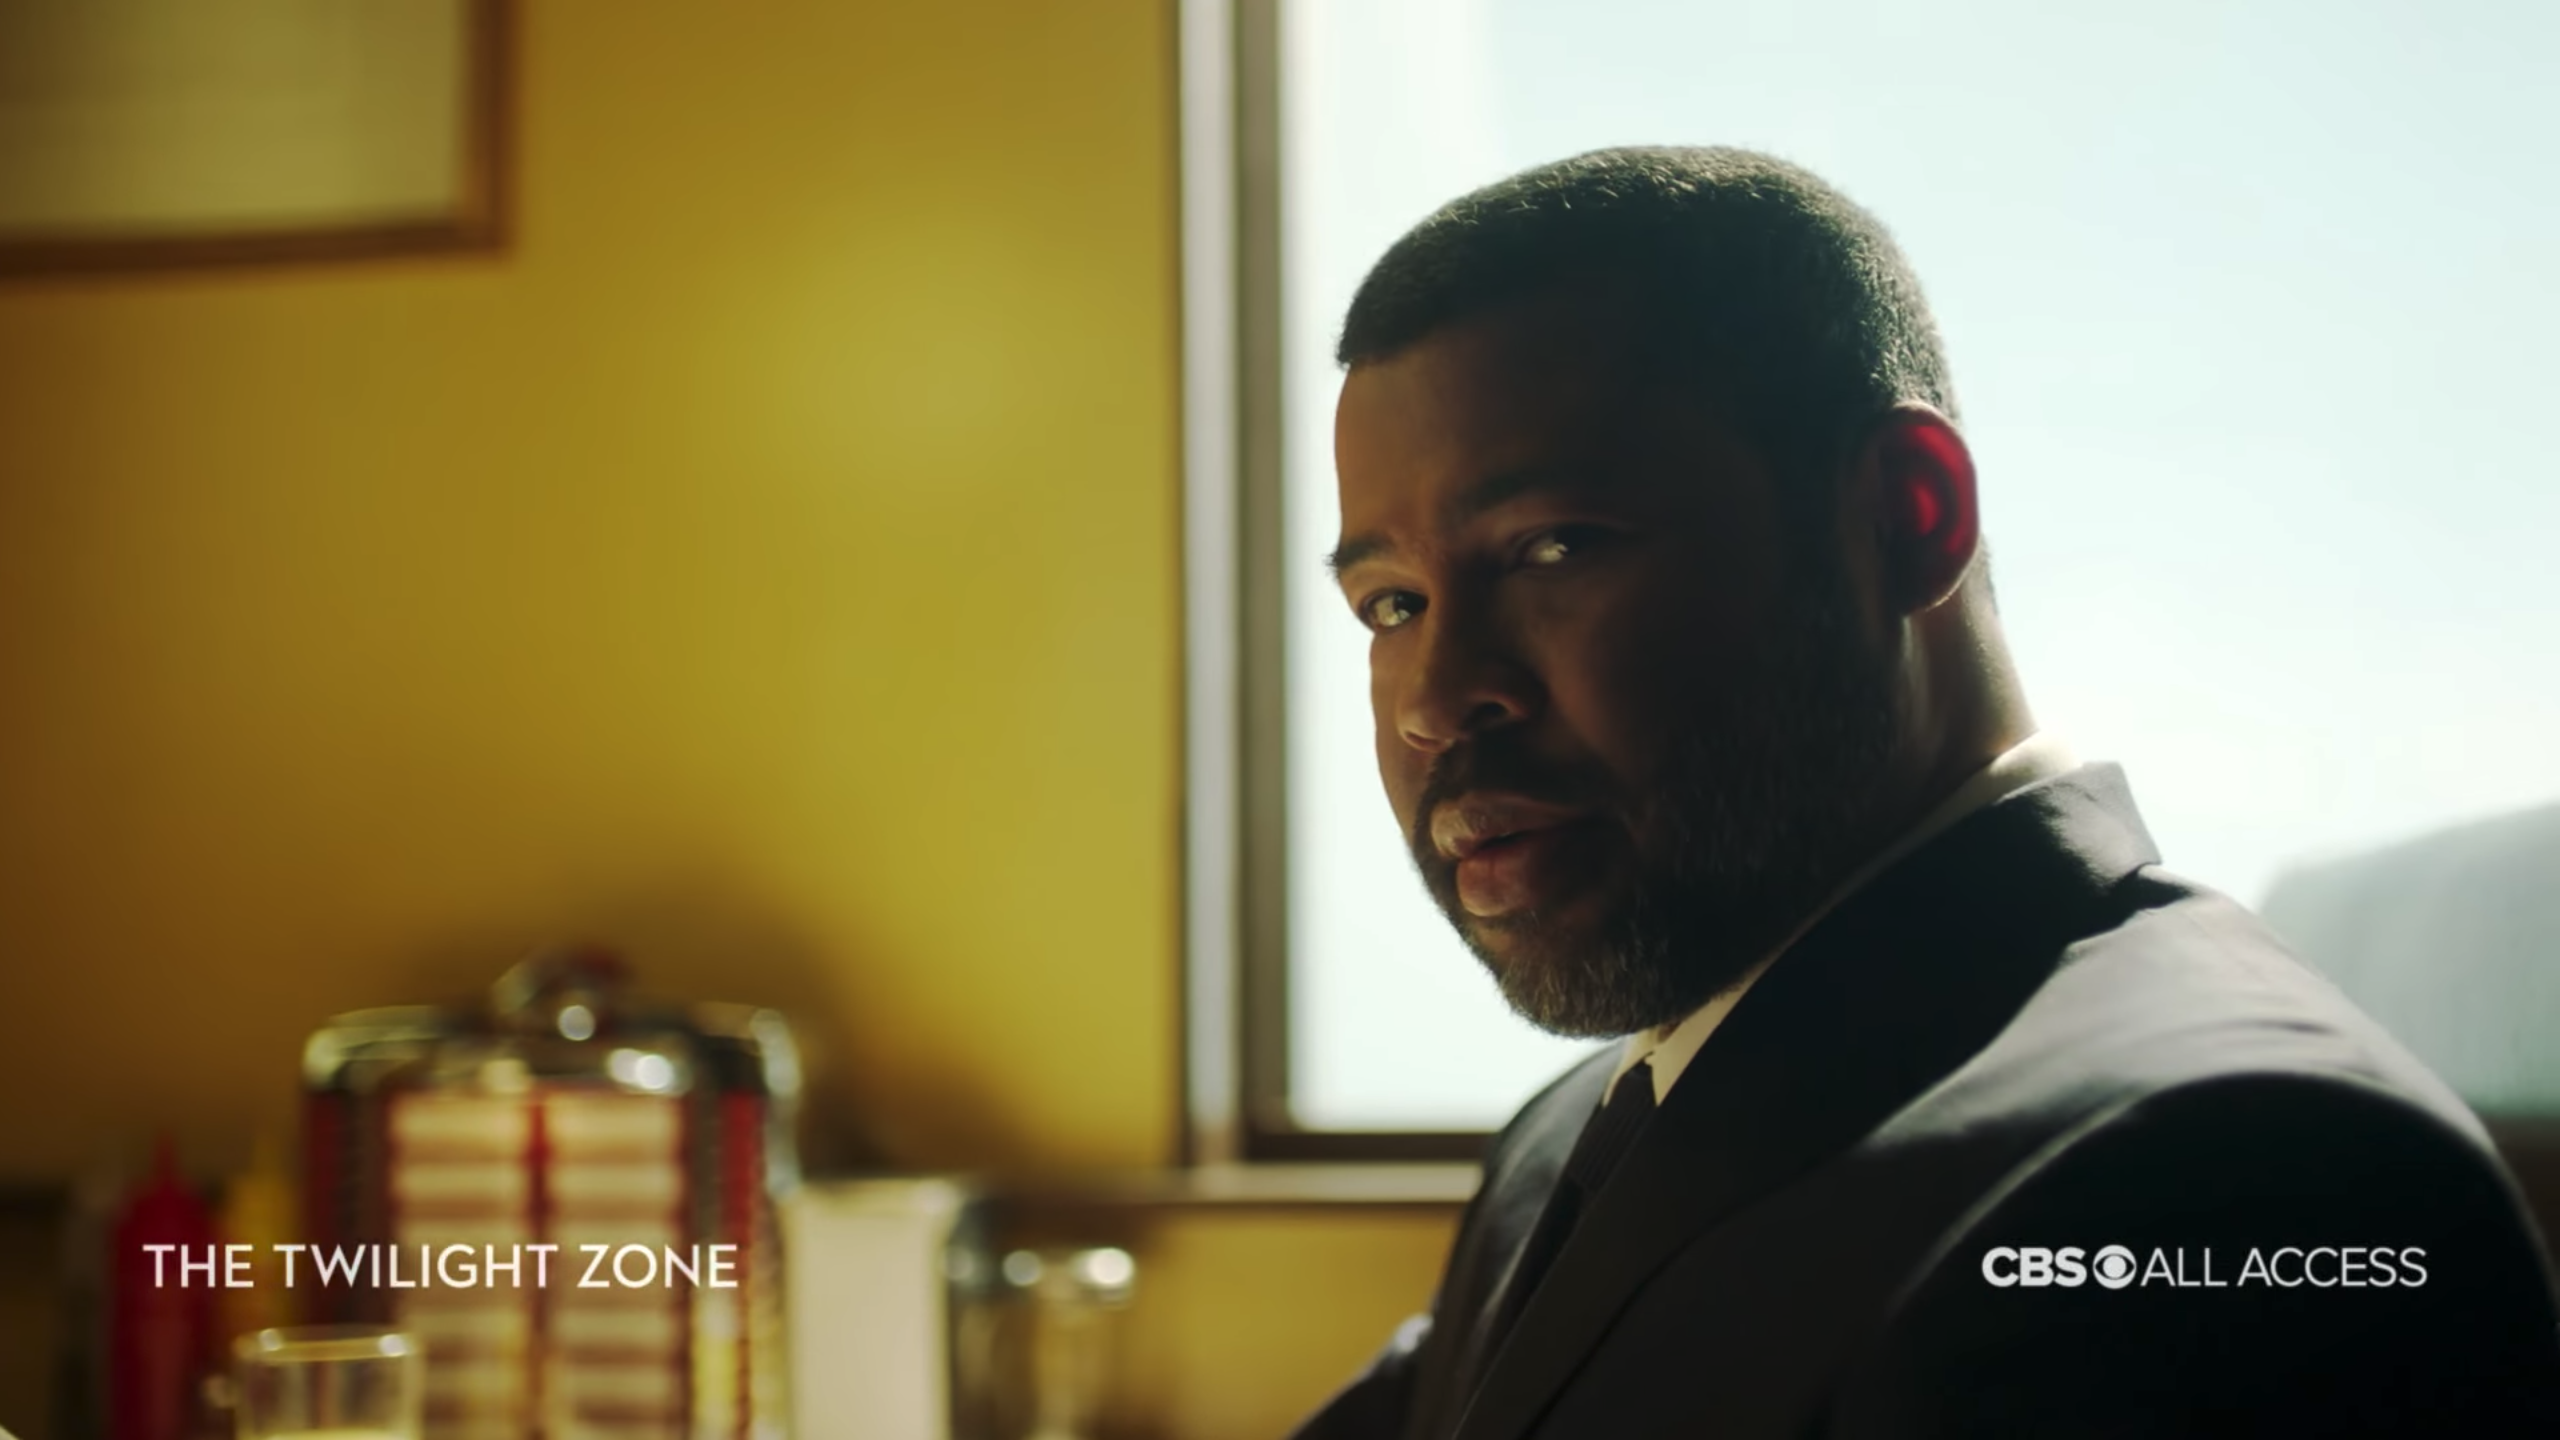 Watch The Twilight Zone Trailer Hosted by Jordan Peele